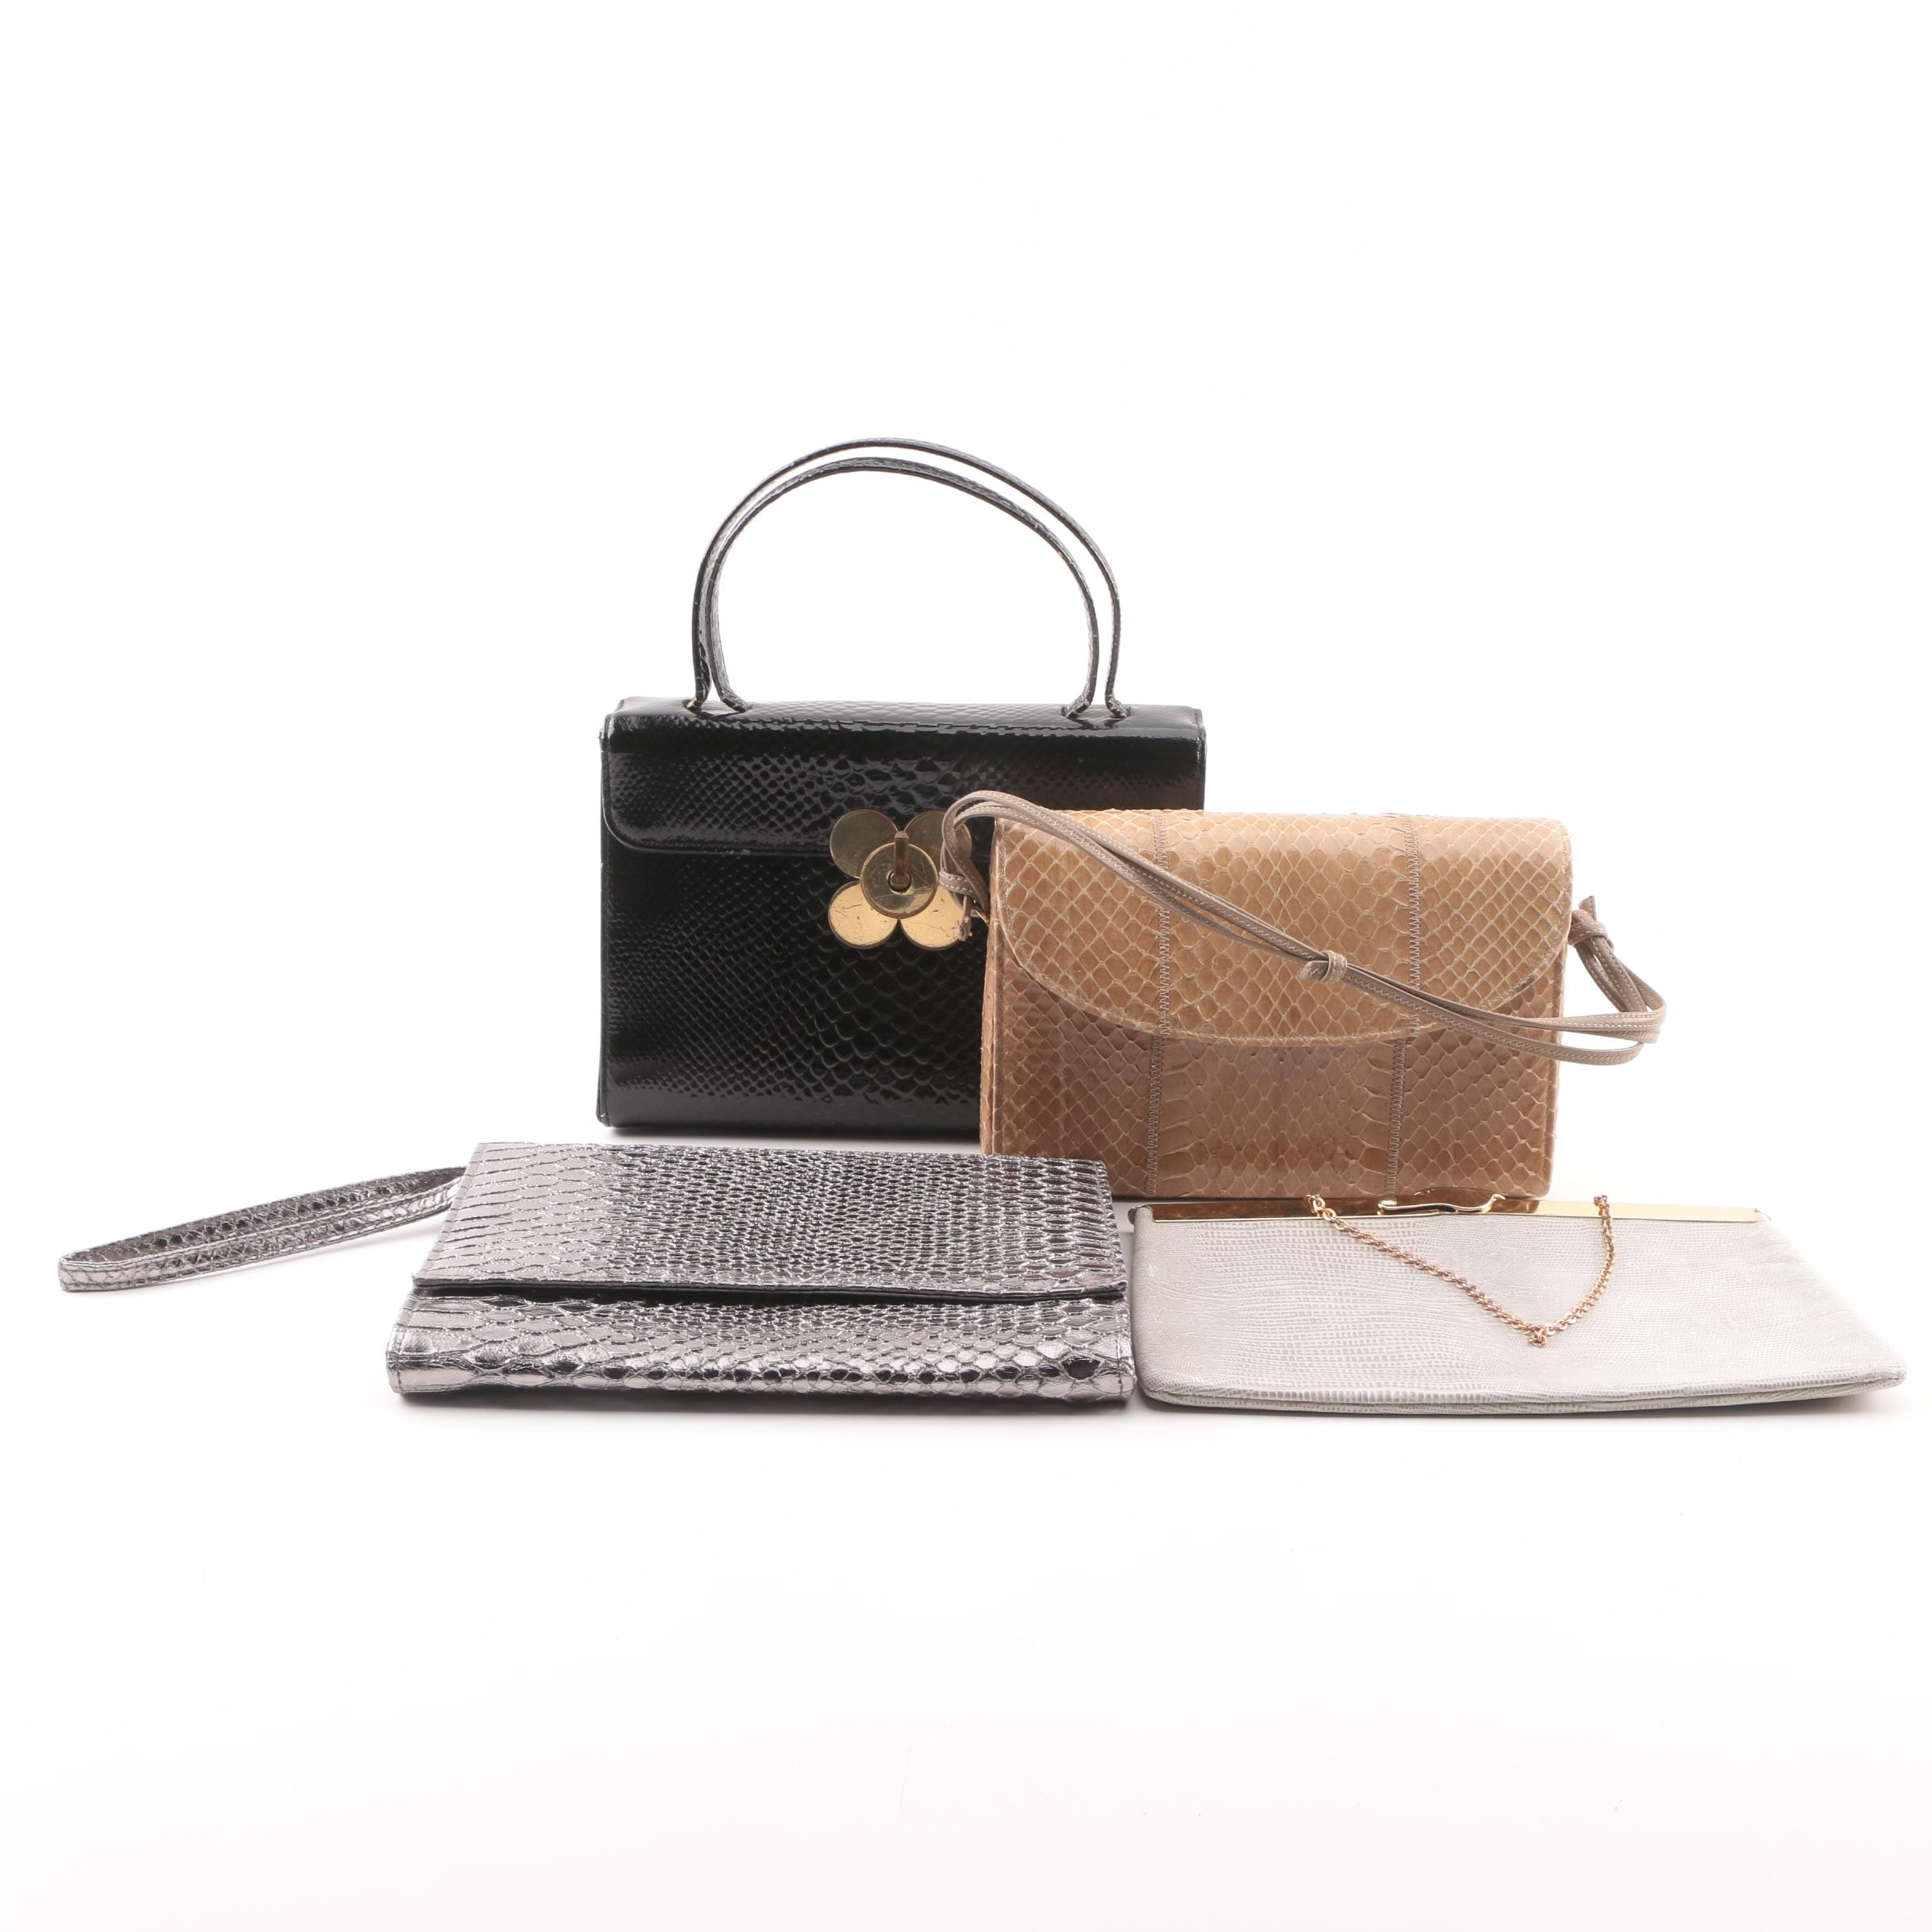 Embossed Leather and Snakeskin Handbags Including Neiman Marcus and Palizzio